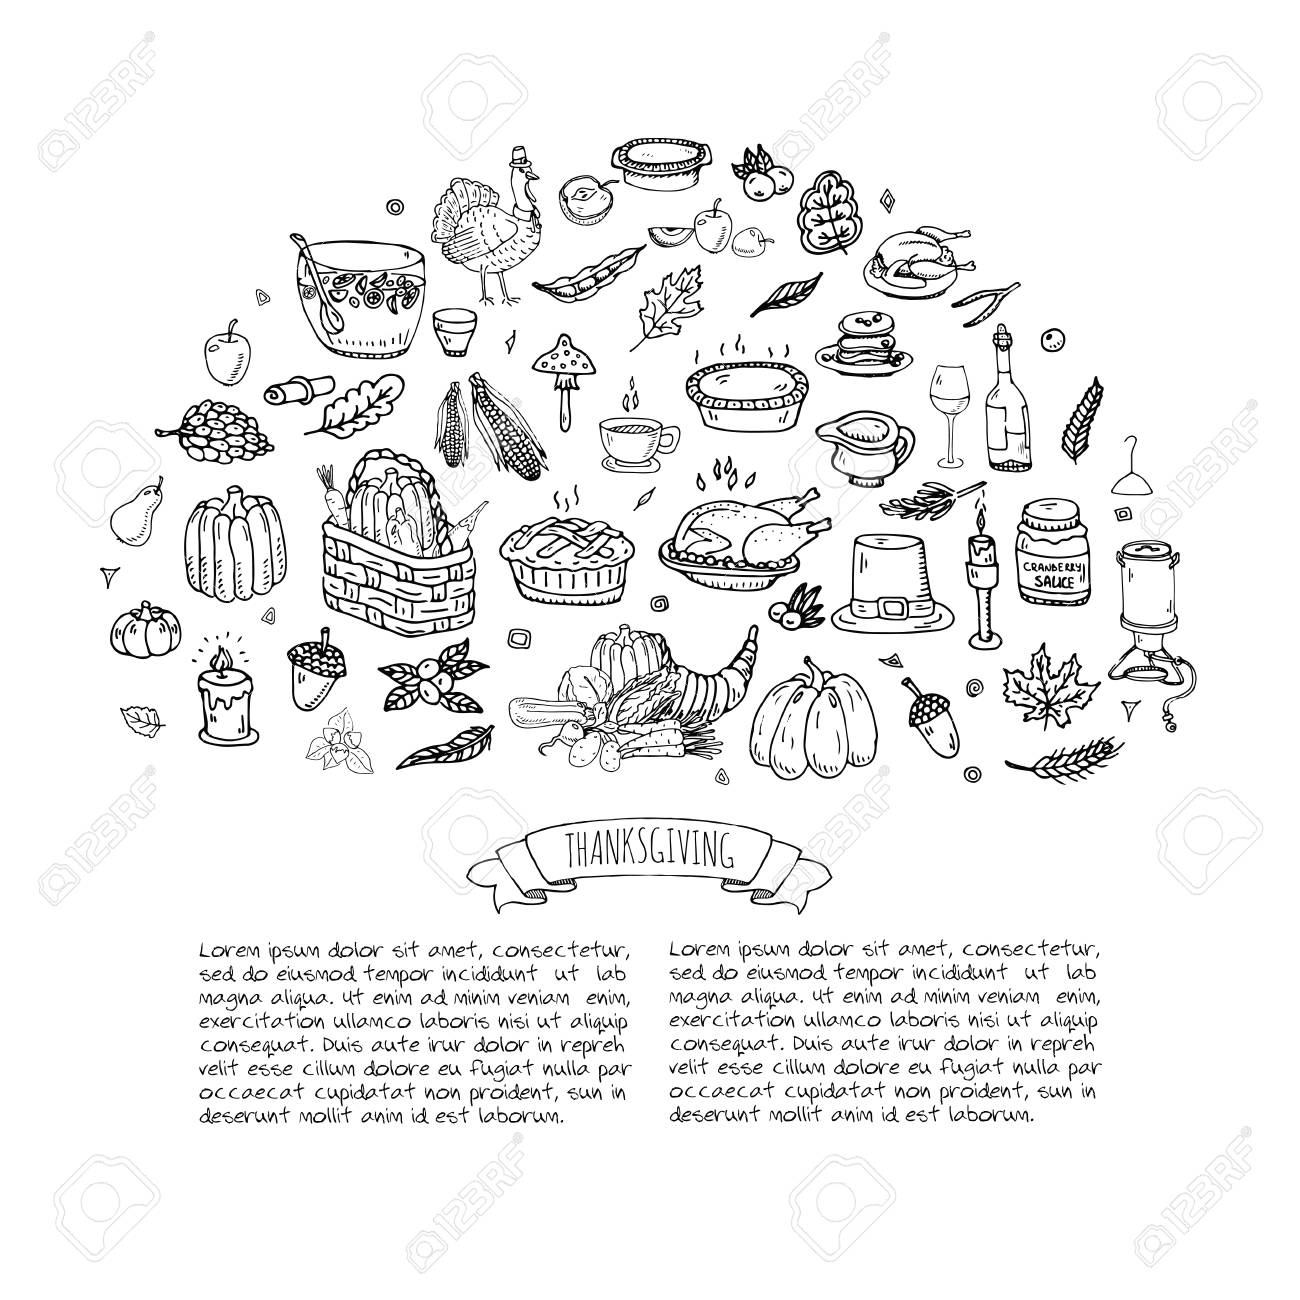 Hand Drawn Doodle Thanksgiving Icons Set Vector Illustration